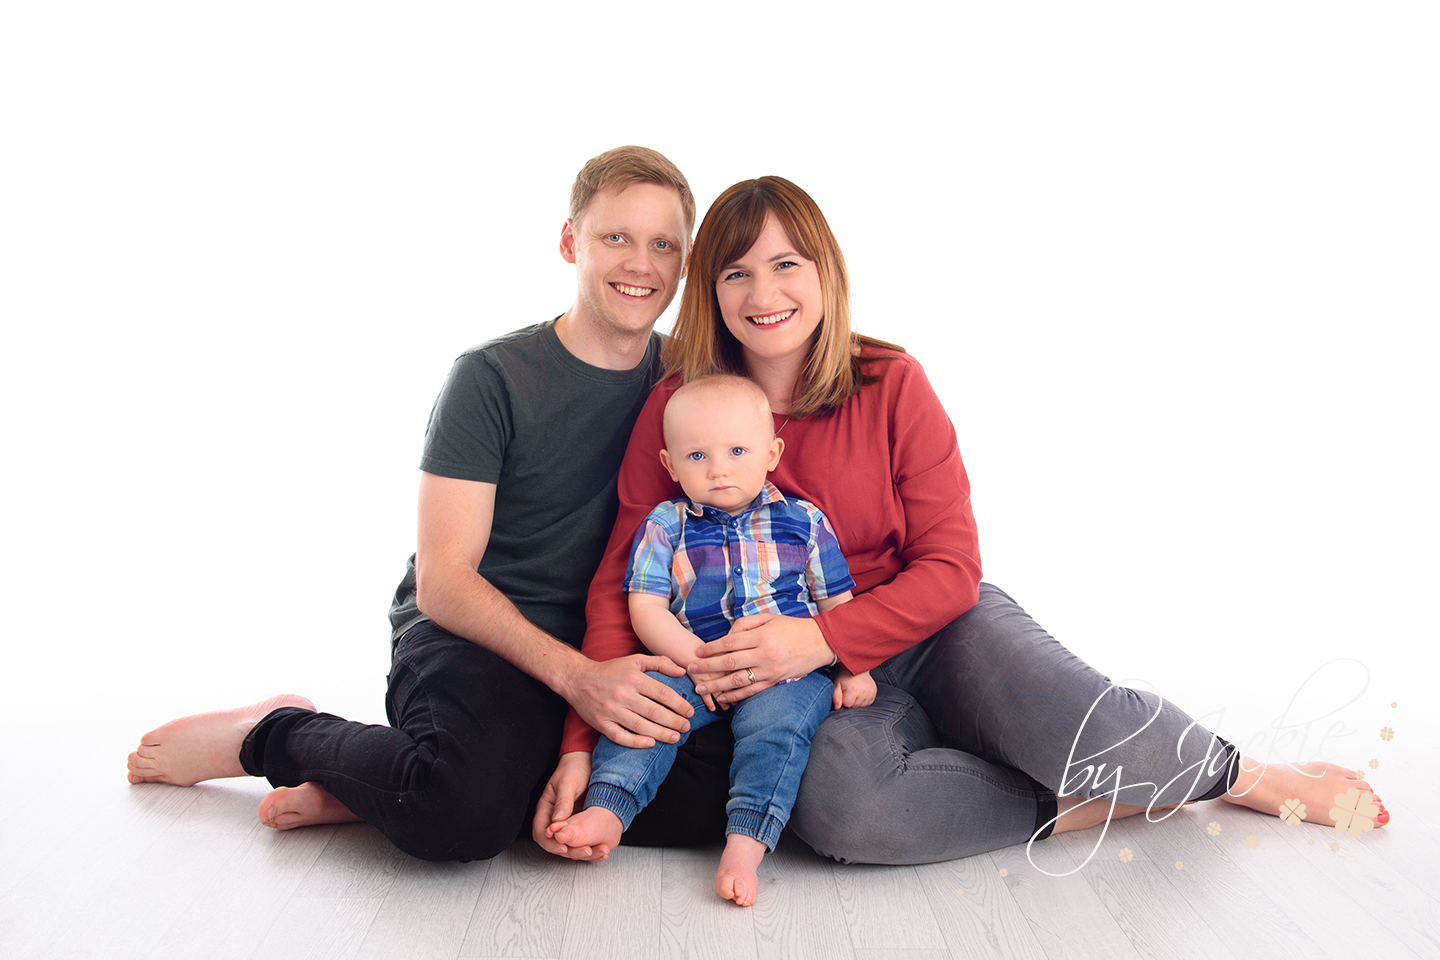 Family portrait with toddlers by Babies By Jackie Photography in Market Weighton, York, North Yorkshire, UK